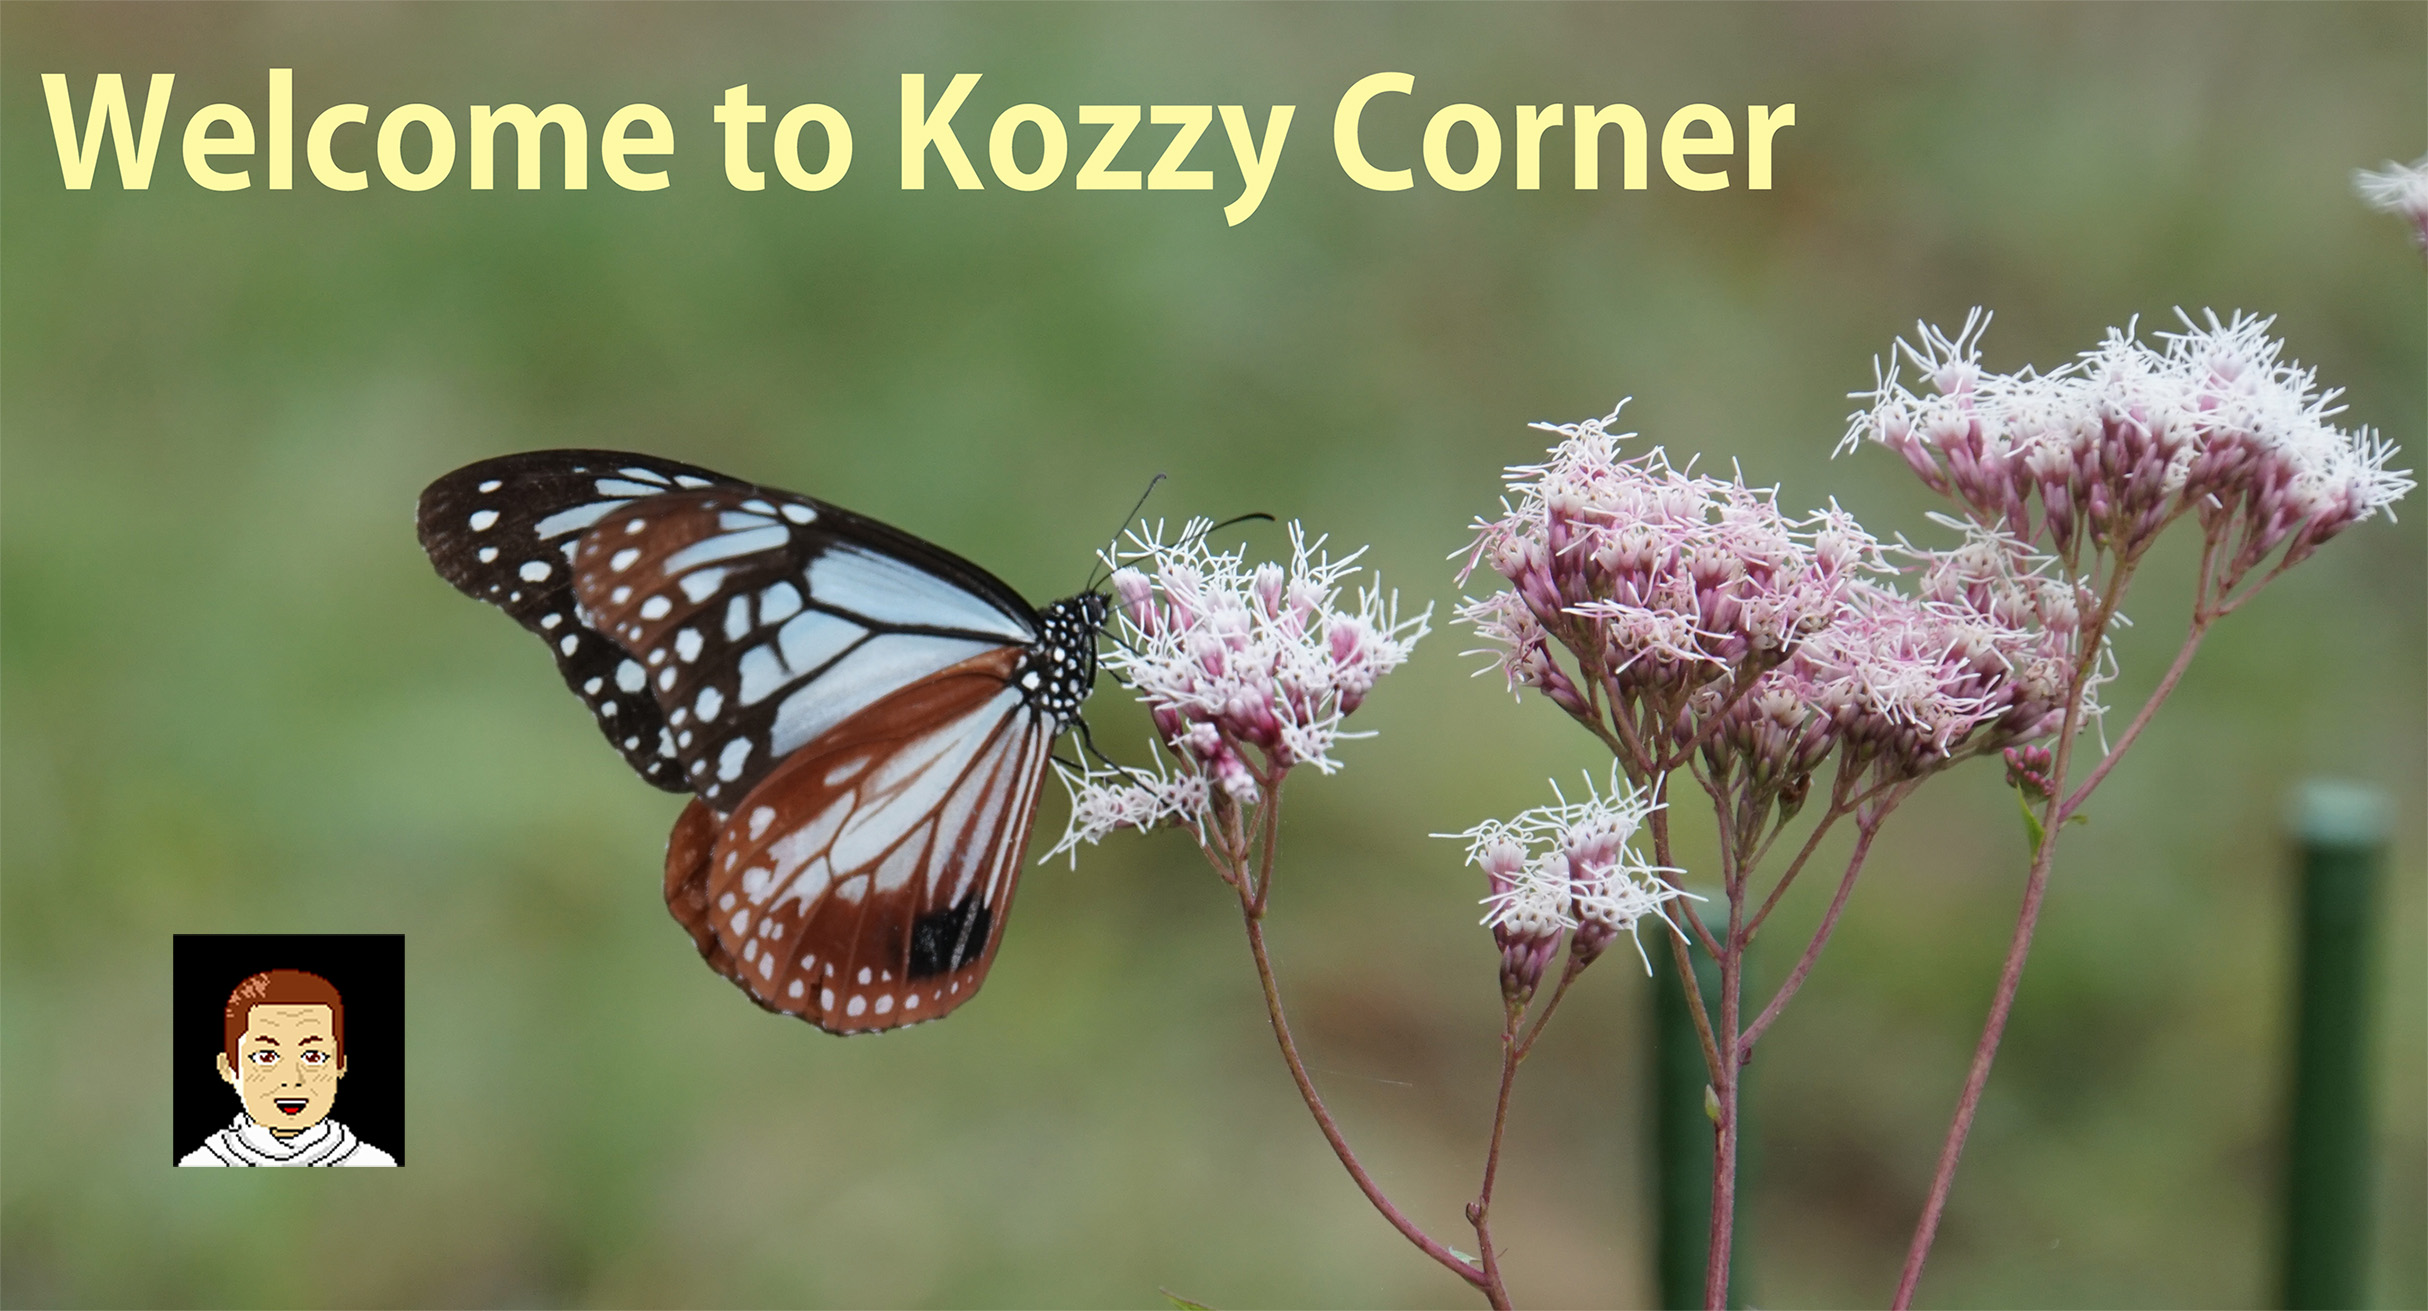 Welcome to Kozzy Corner